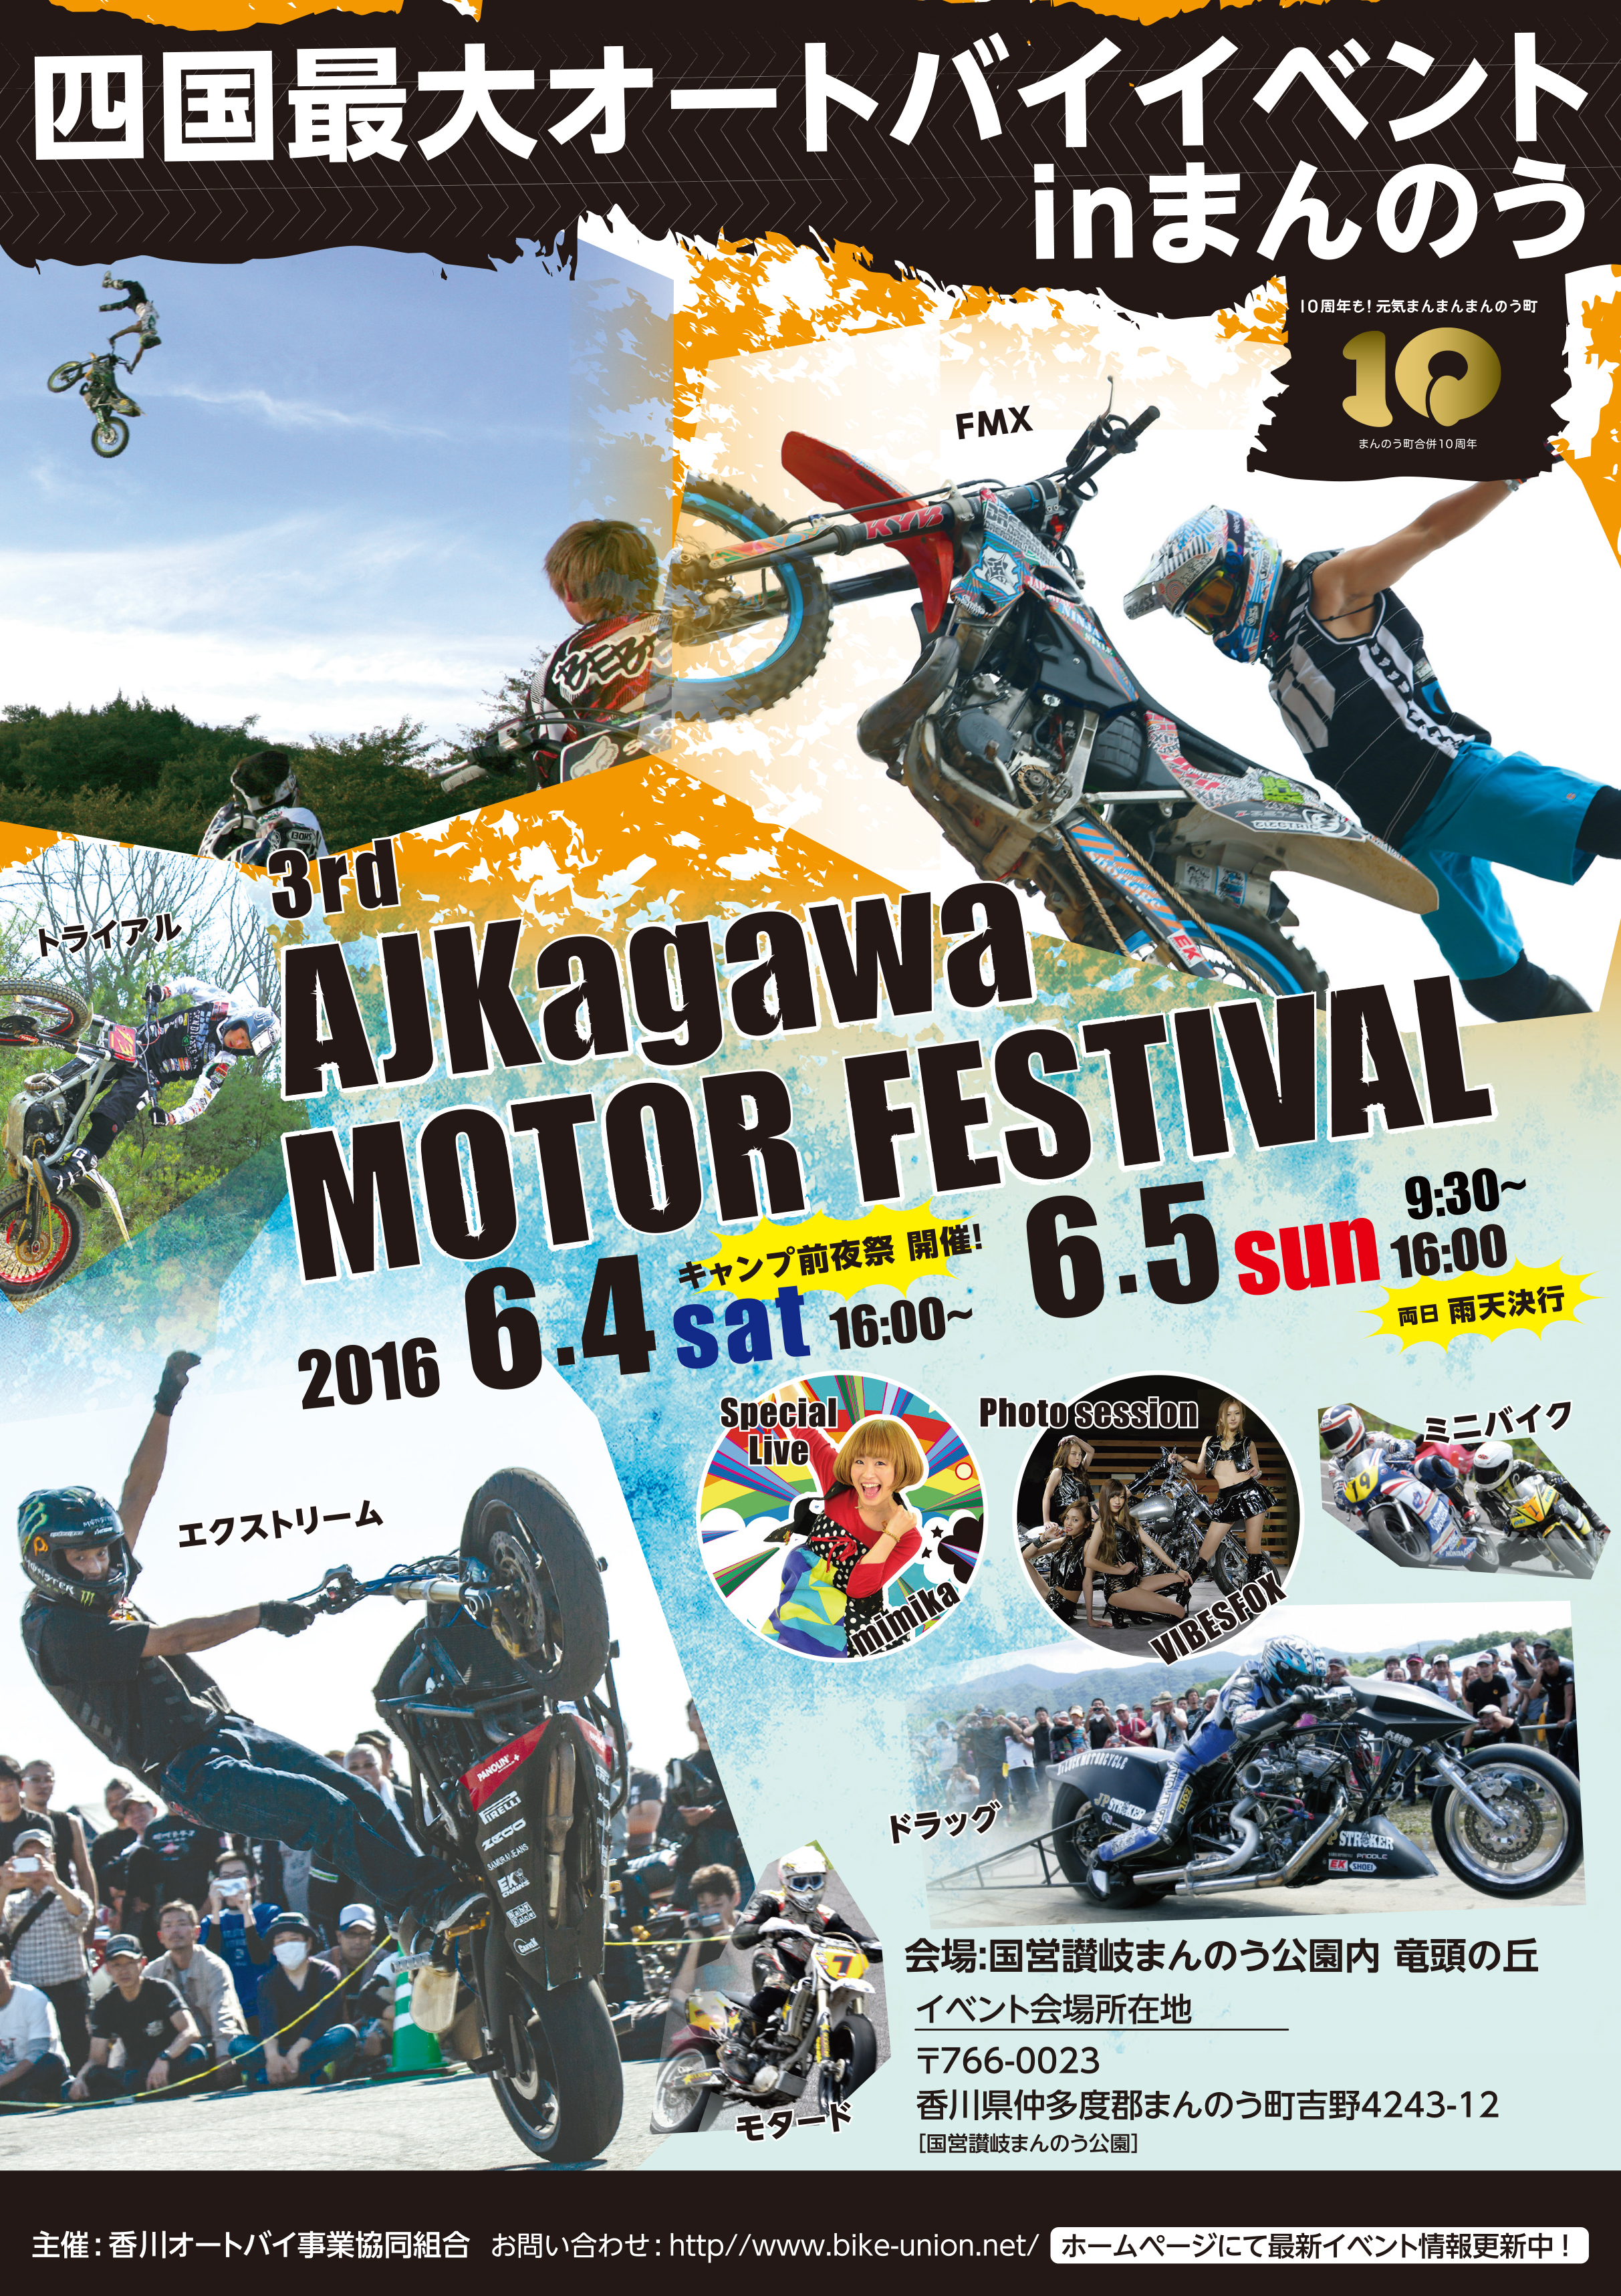 AJ Kagawa Motor Festival inまんのう<公式HP>